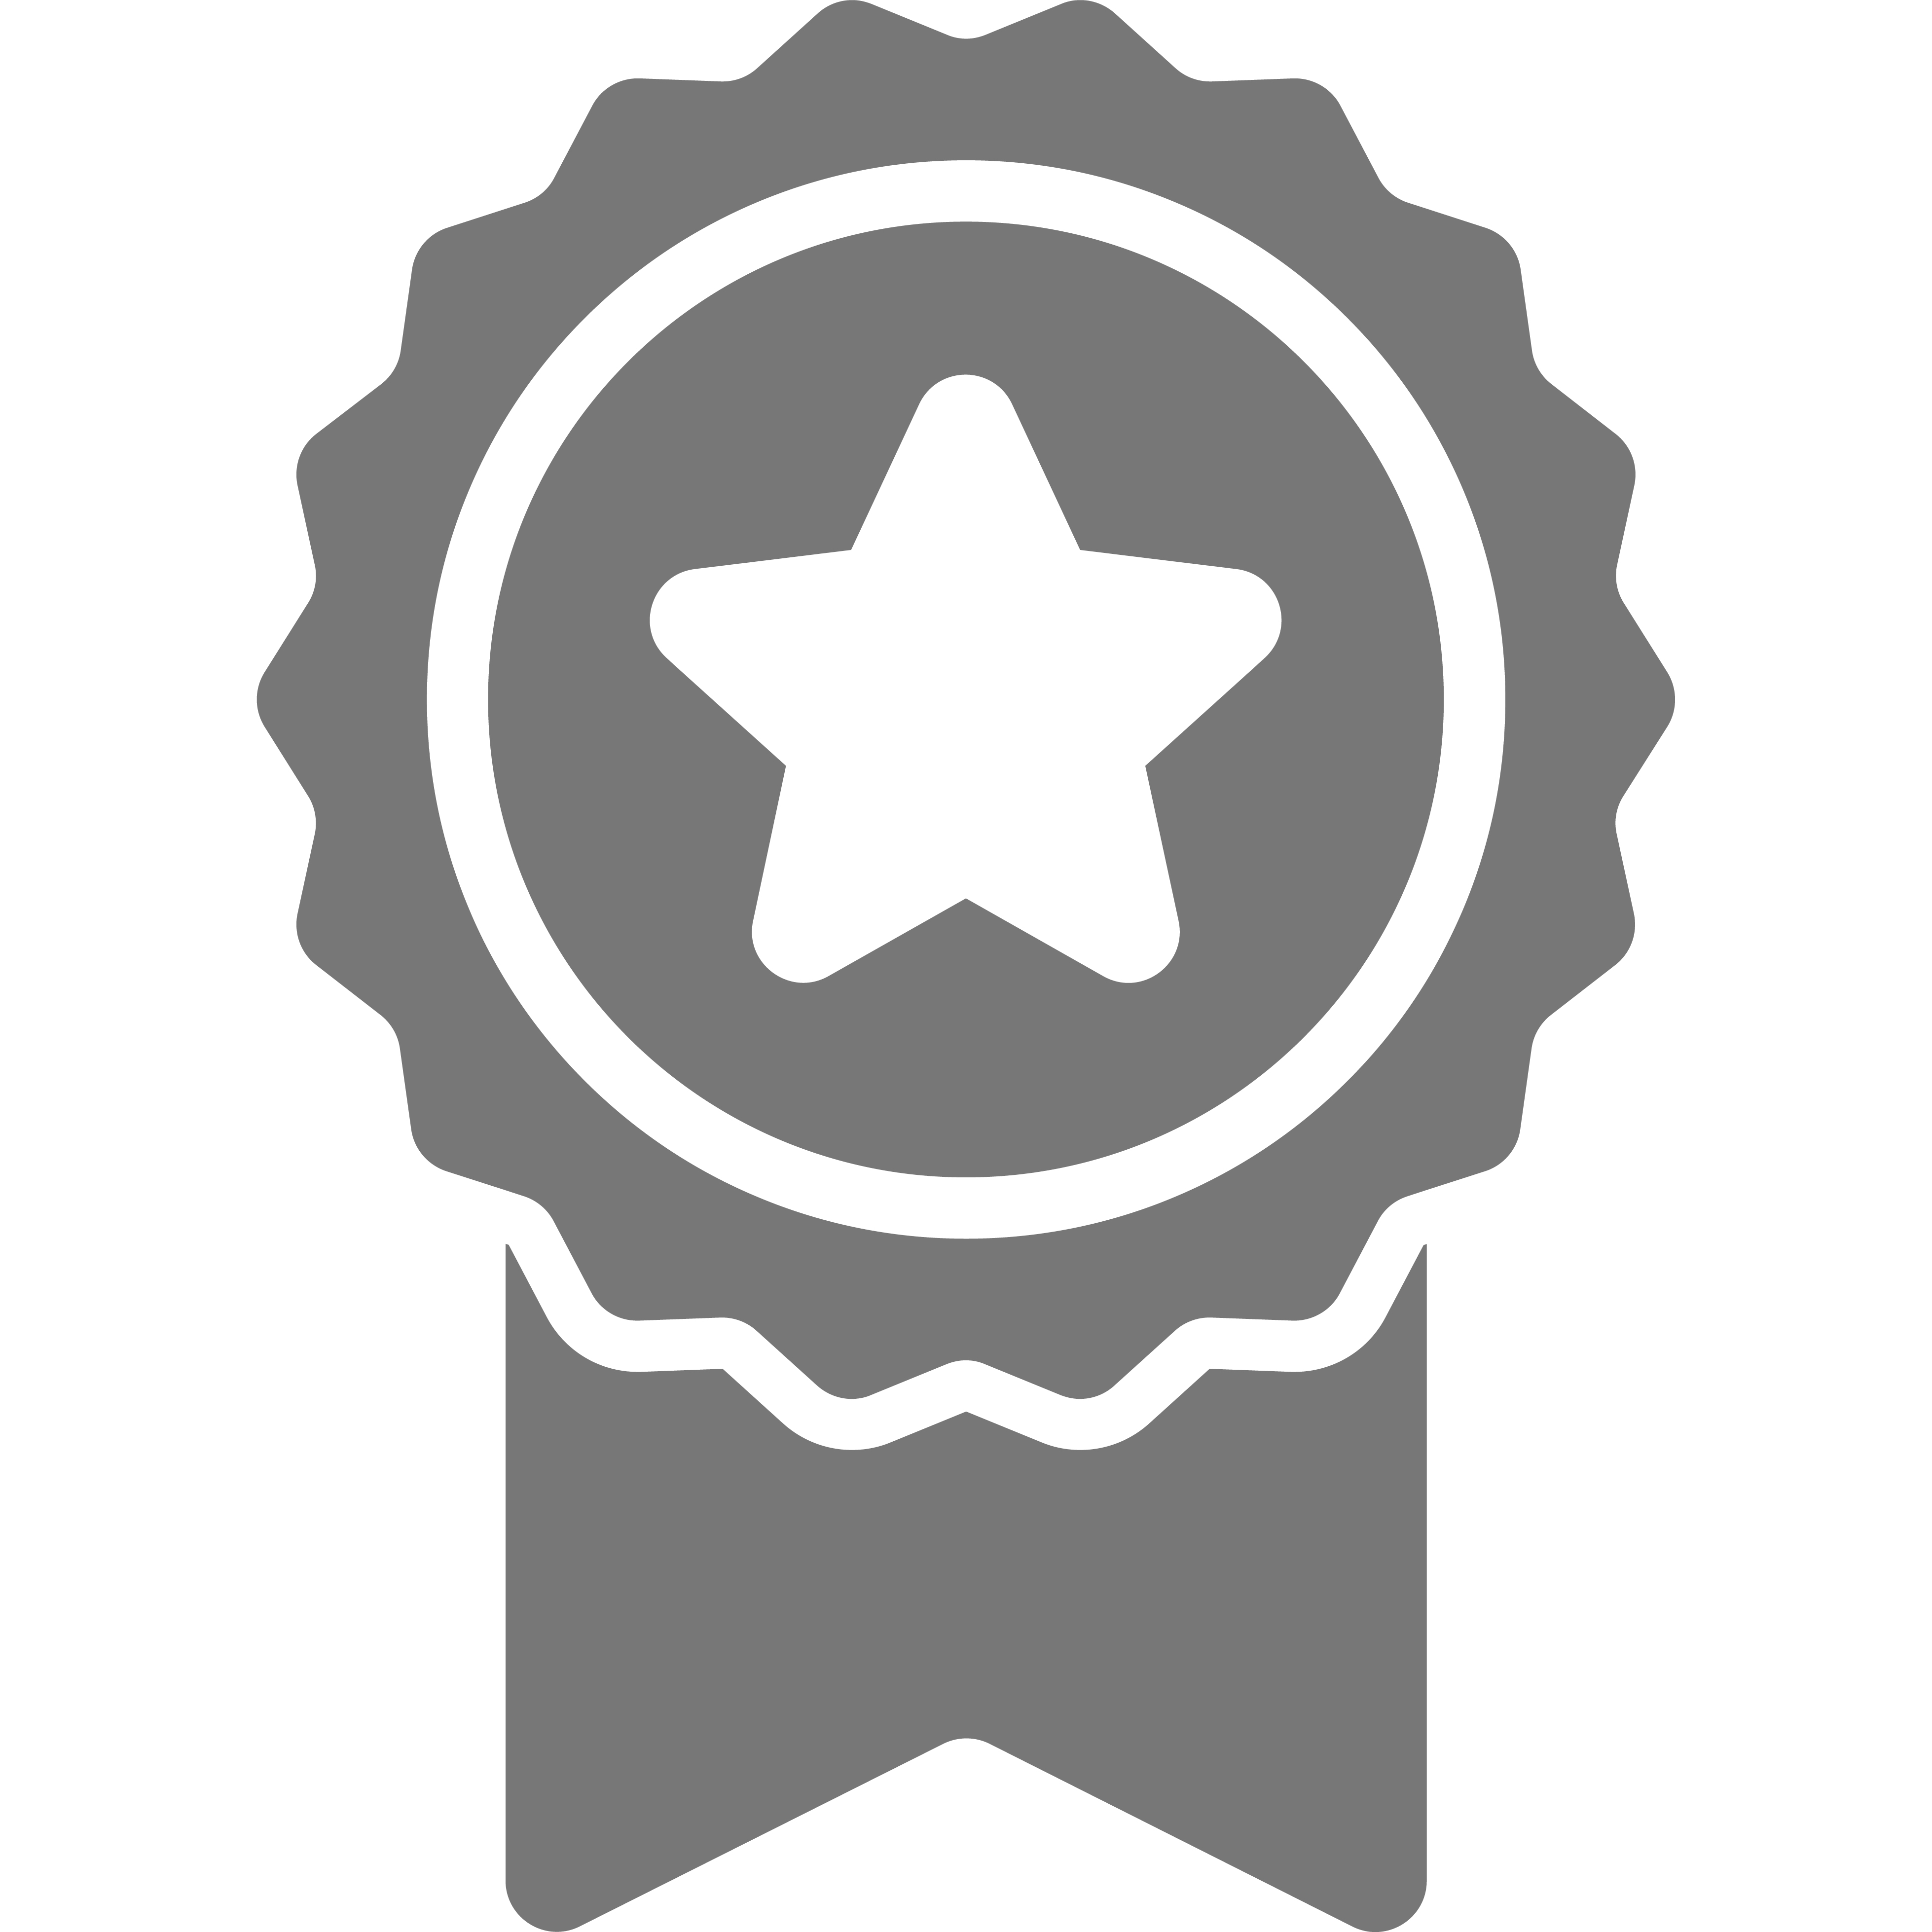 mifa-badge-with-a-star-01.jpg